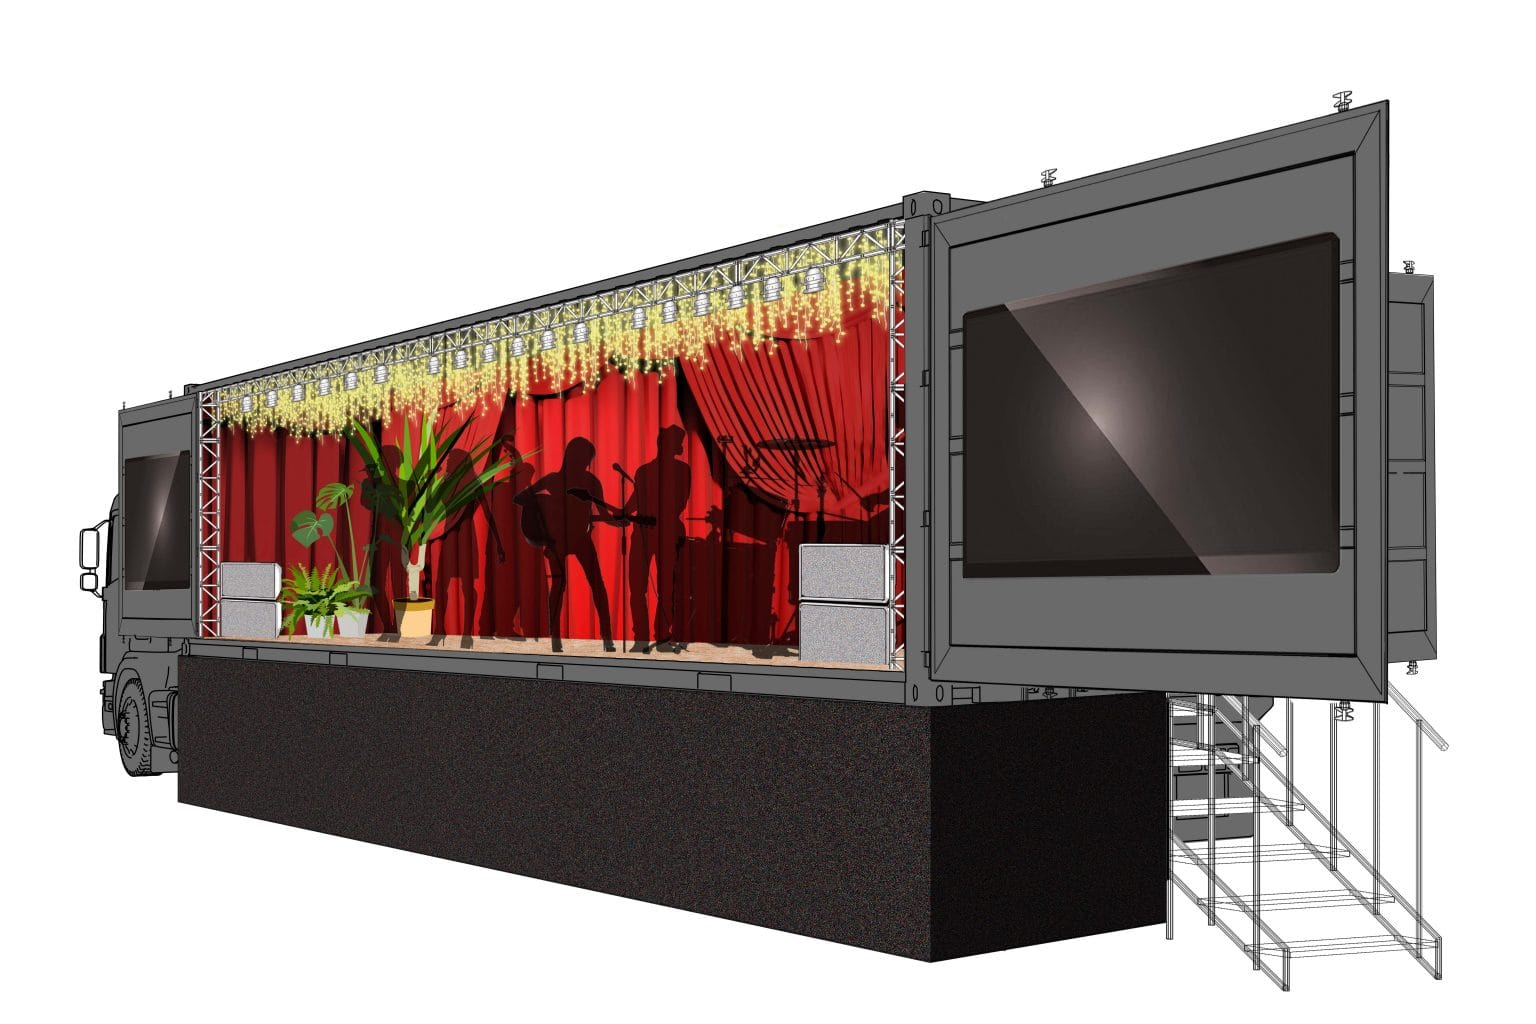 Shipping container bandstand